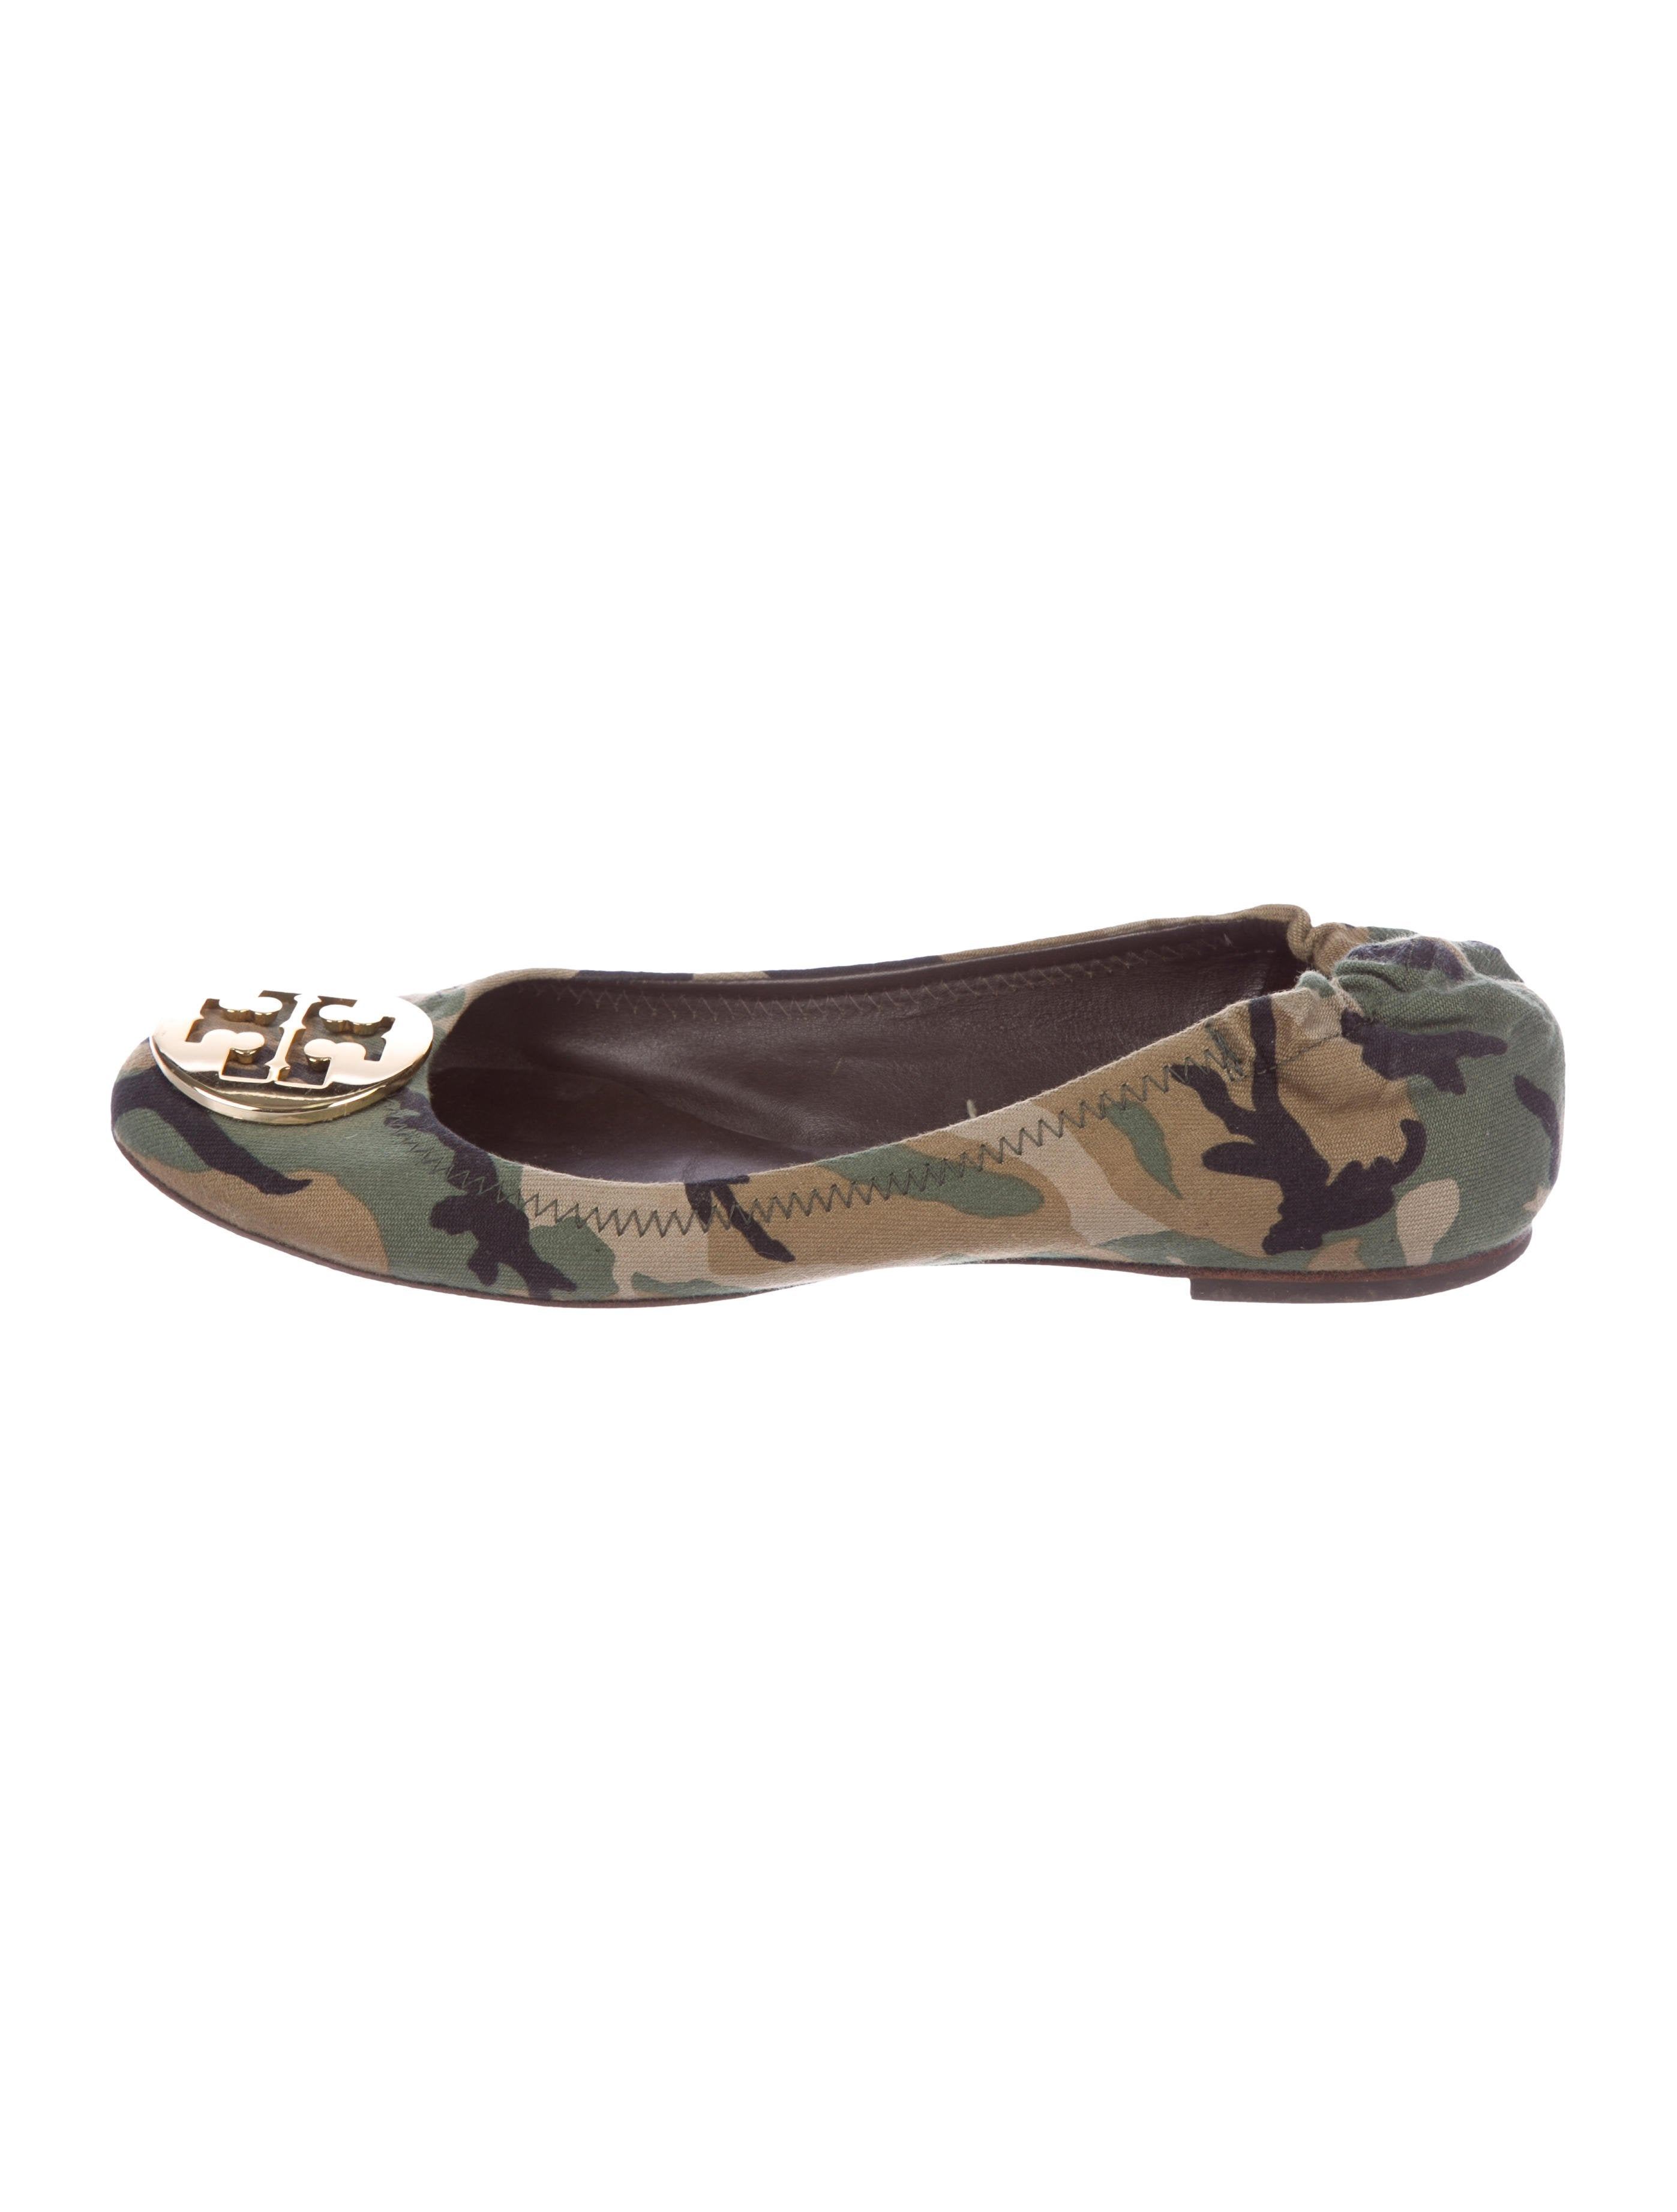 38faa0d6fc79 Tory Burch Reva Camouflage Flats - Shoes - WTO150349